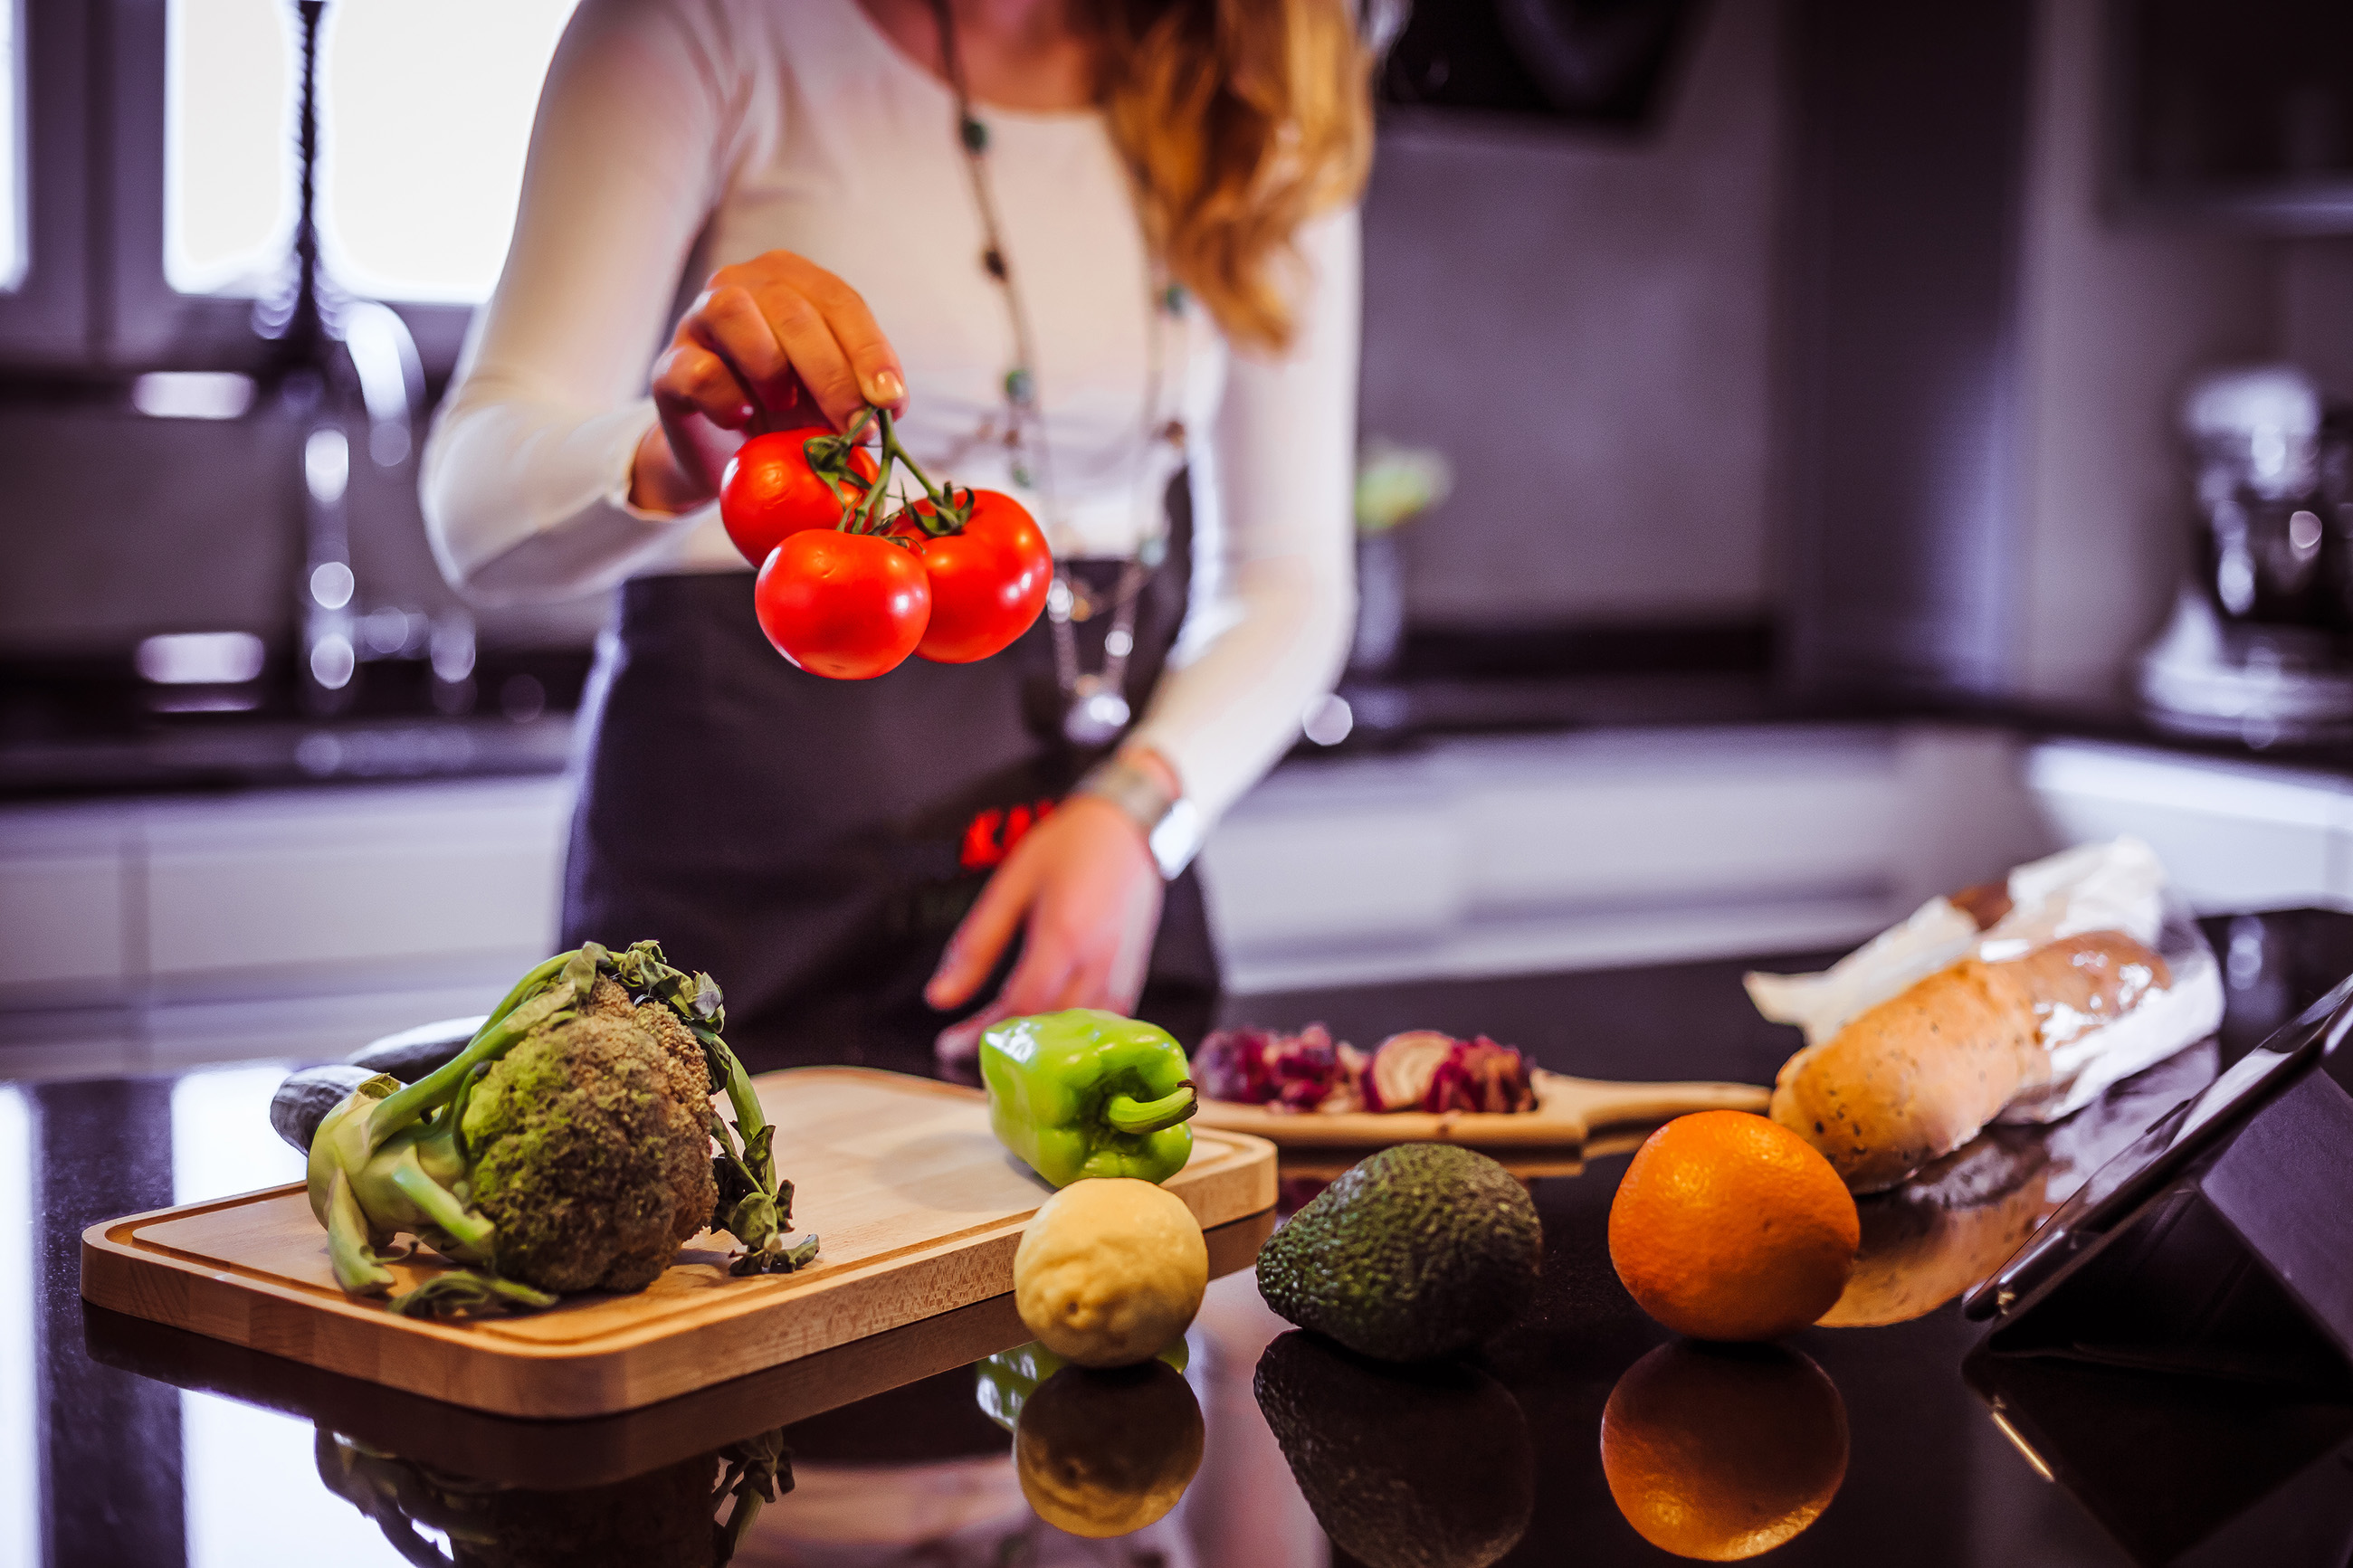 Young woman cooking healthy meal made of various vegetable and fruit